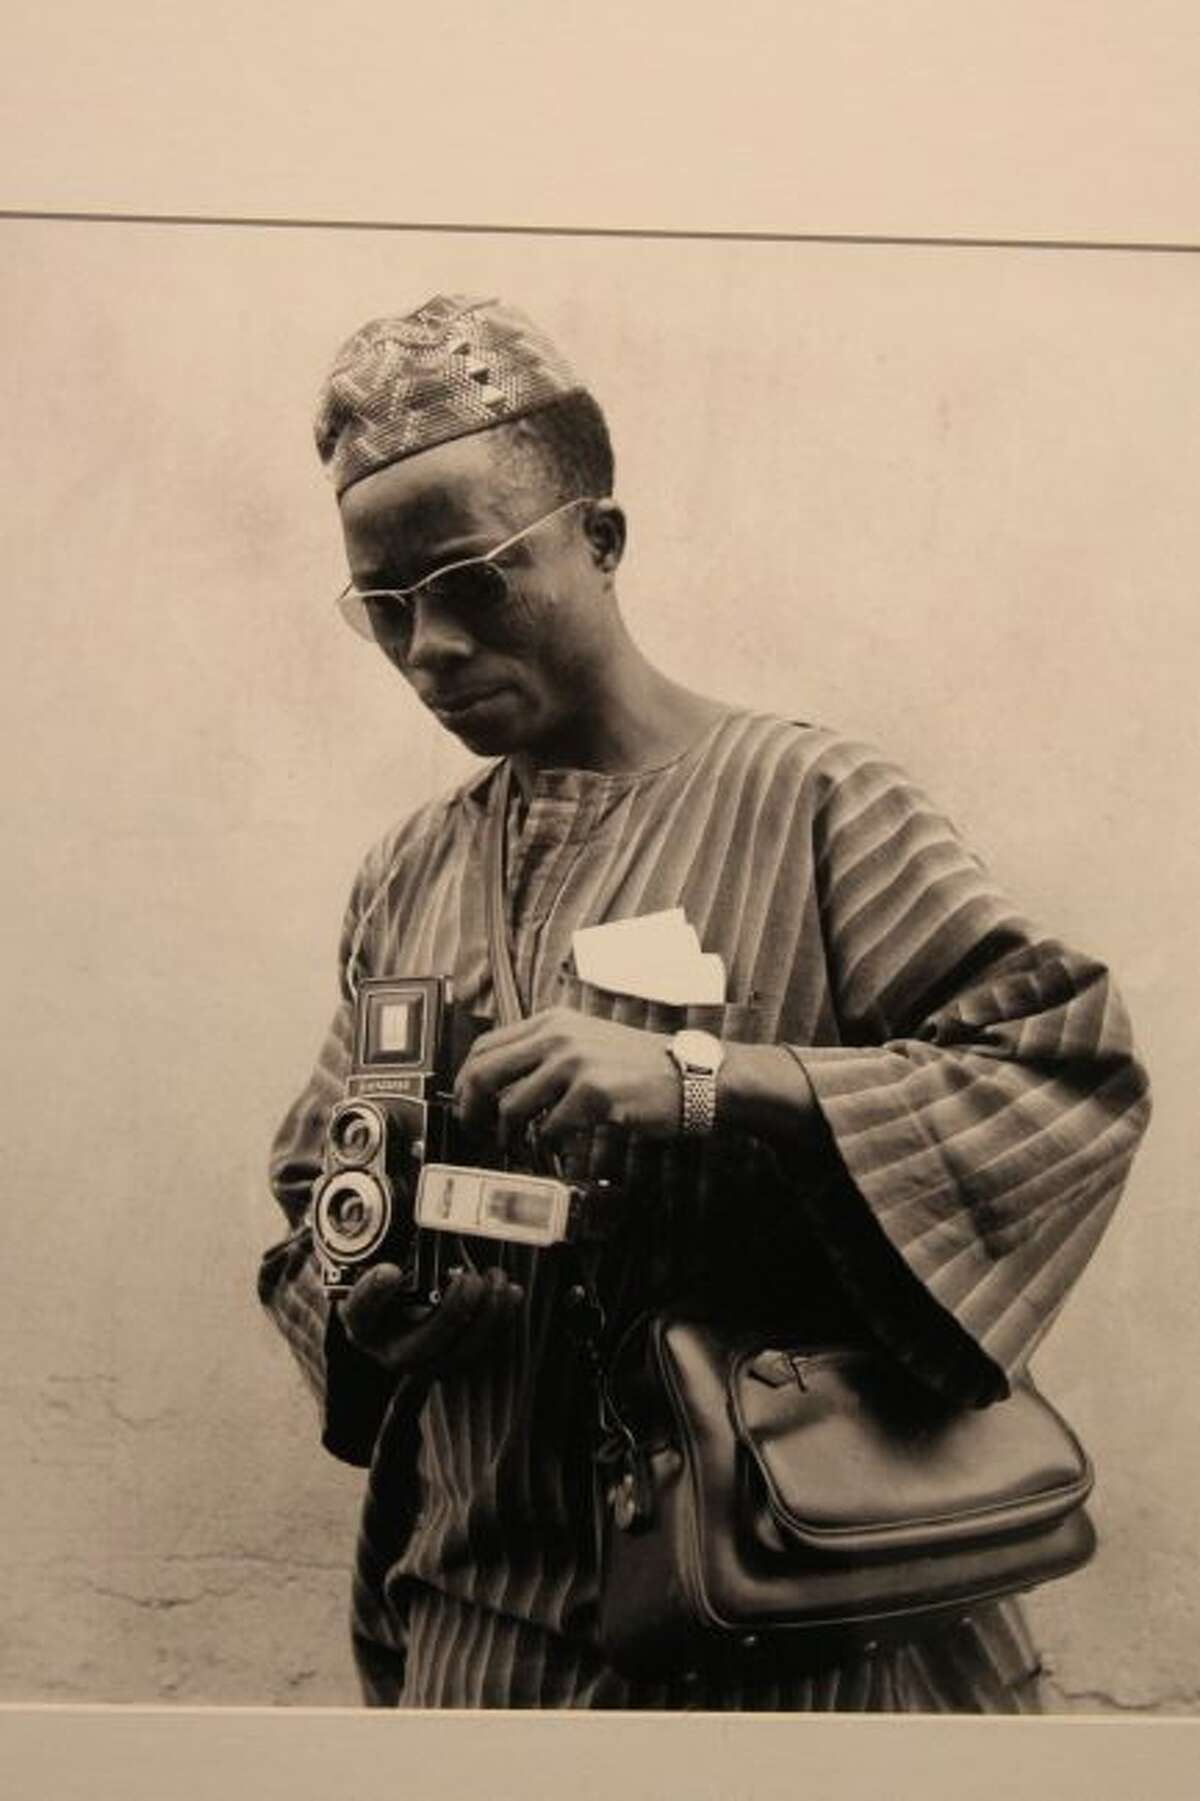 This self portrait shows the late Tijani Sitou who made many classic portraits during the 1970s and 80s in Mali. Thirty one of his portraits are on display at West Shore Community College.